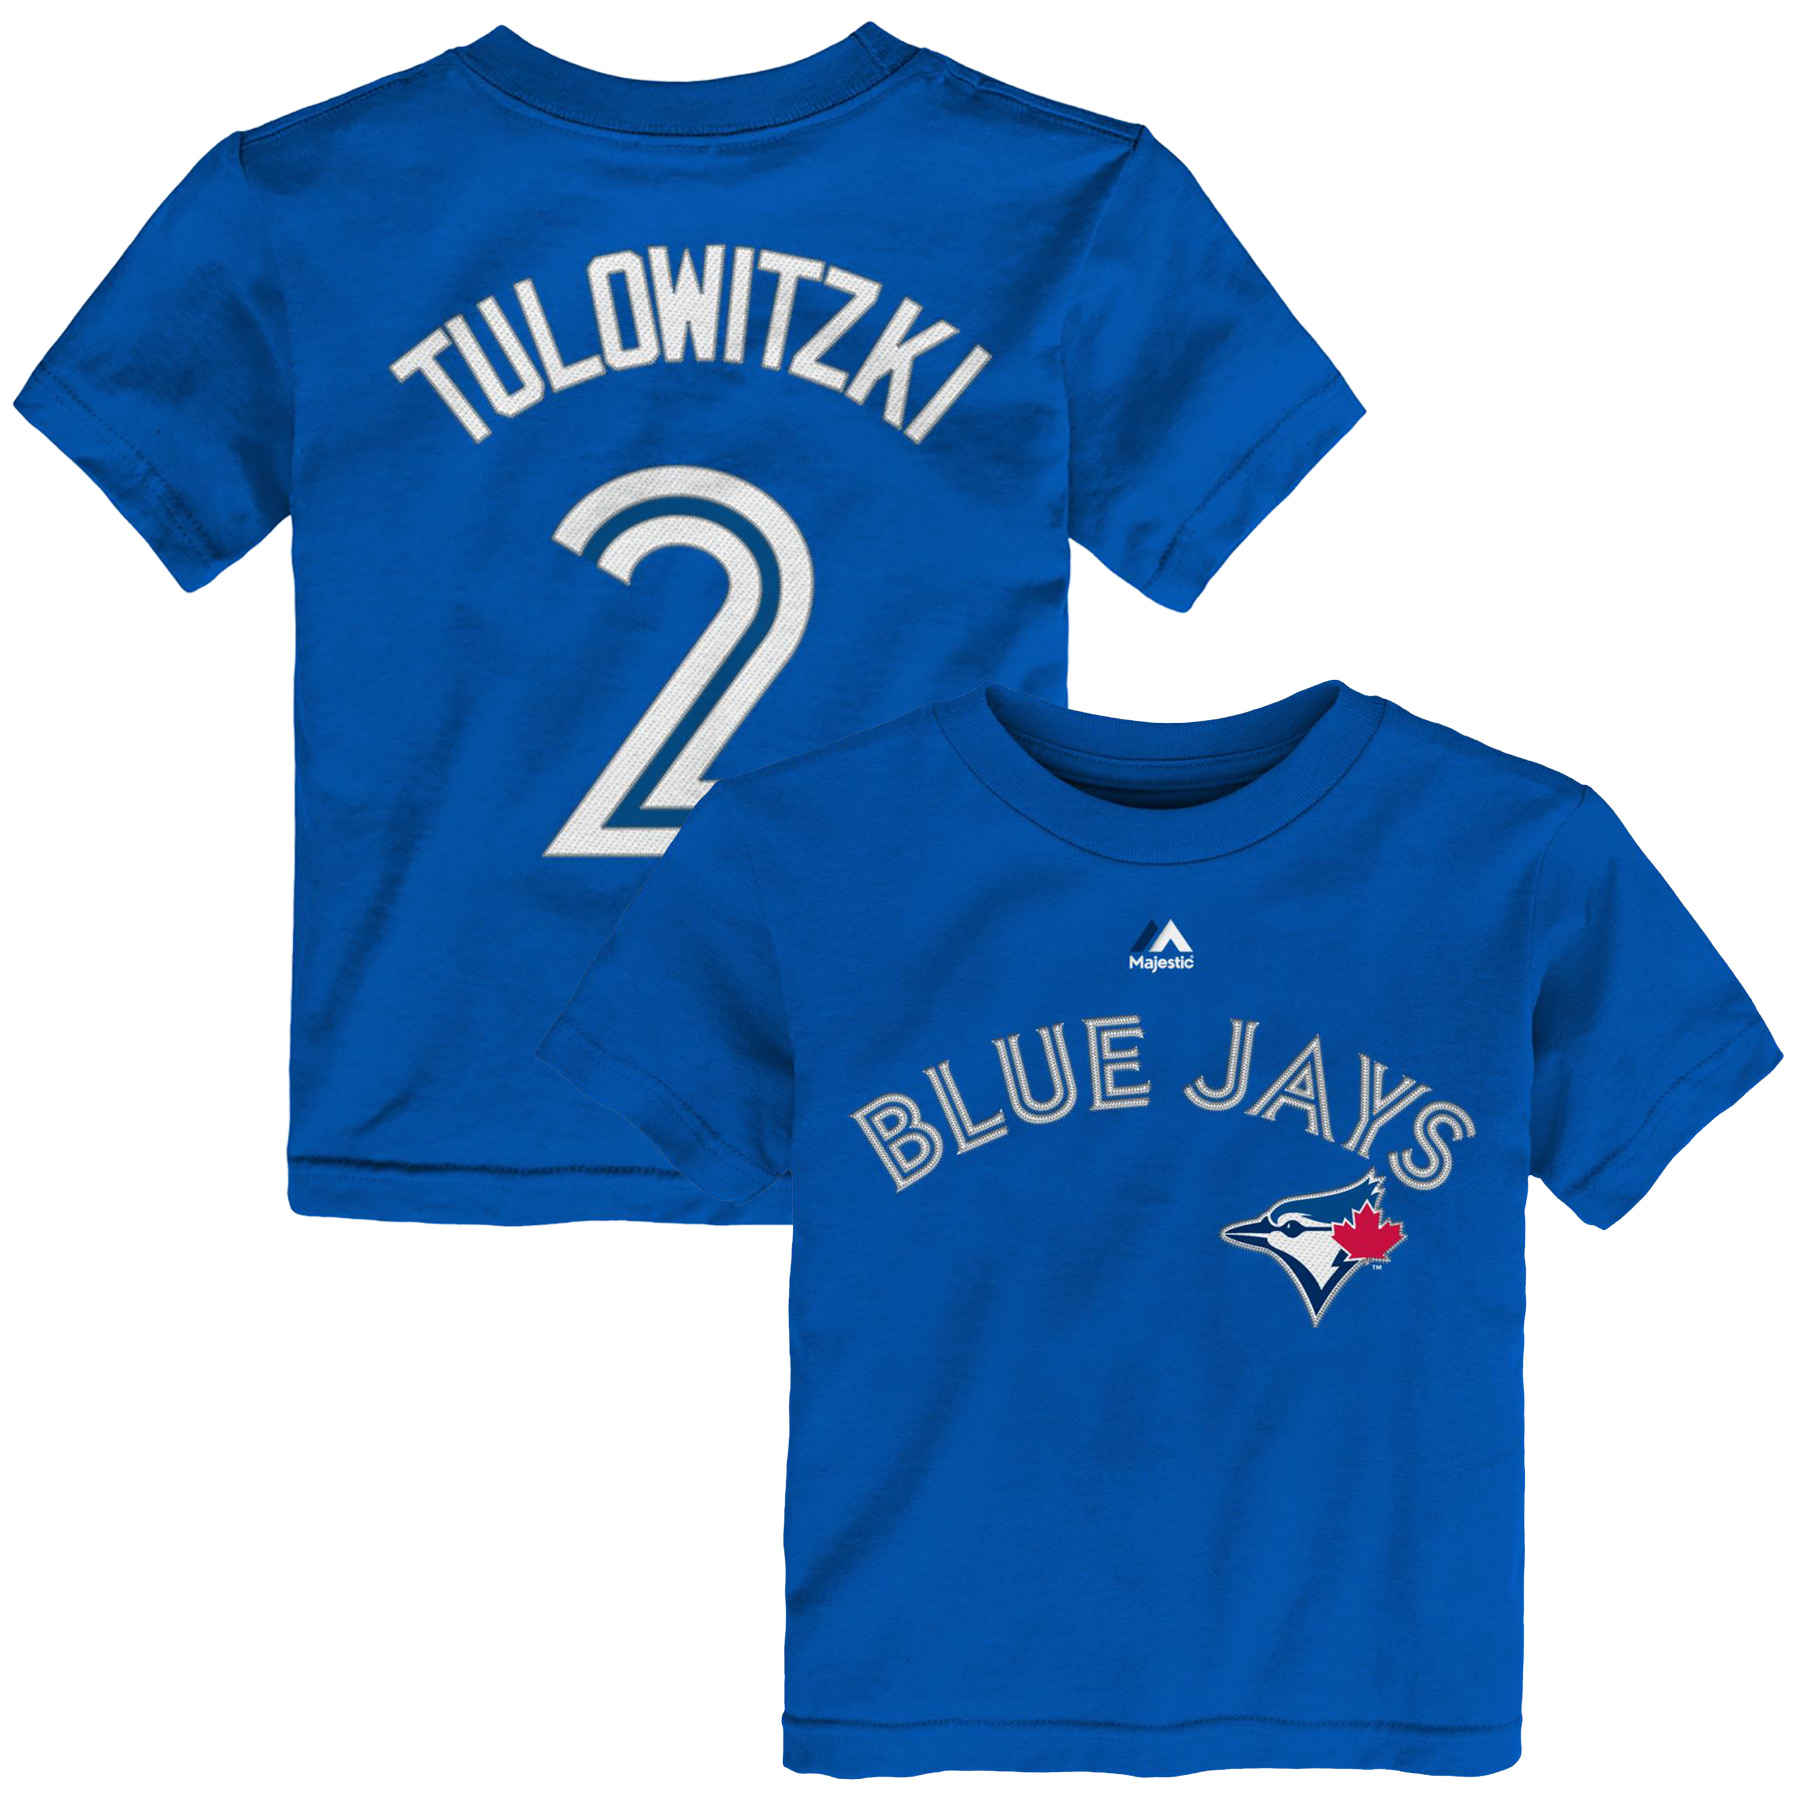 Troy Tulowitzki Toronto Blue Jays Majestic Toddler Player Name & Number T-Shirt - Royal